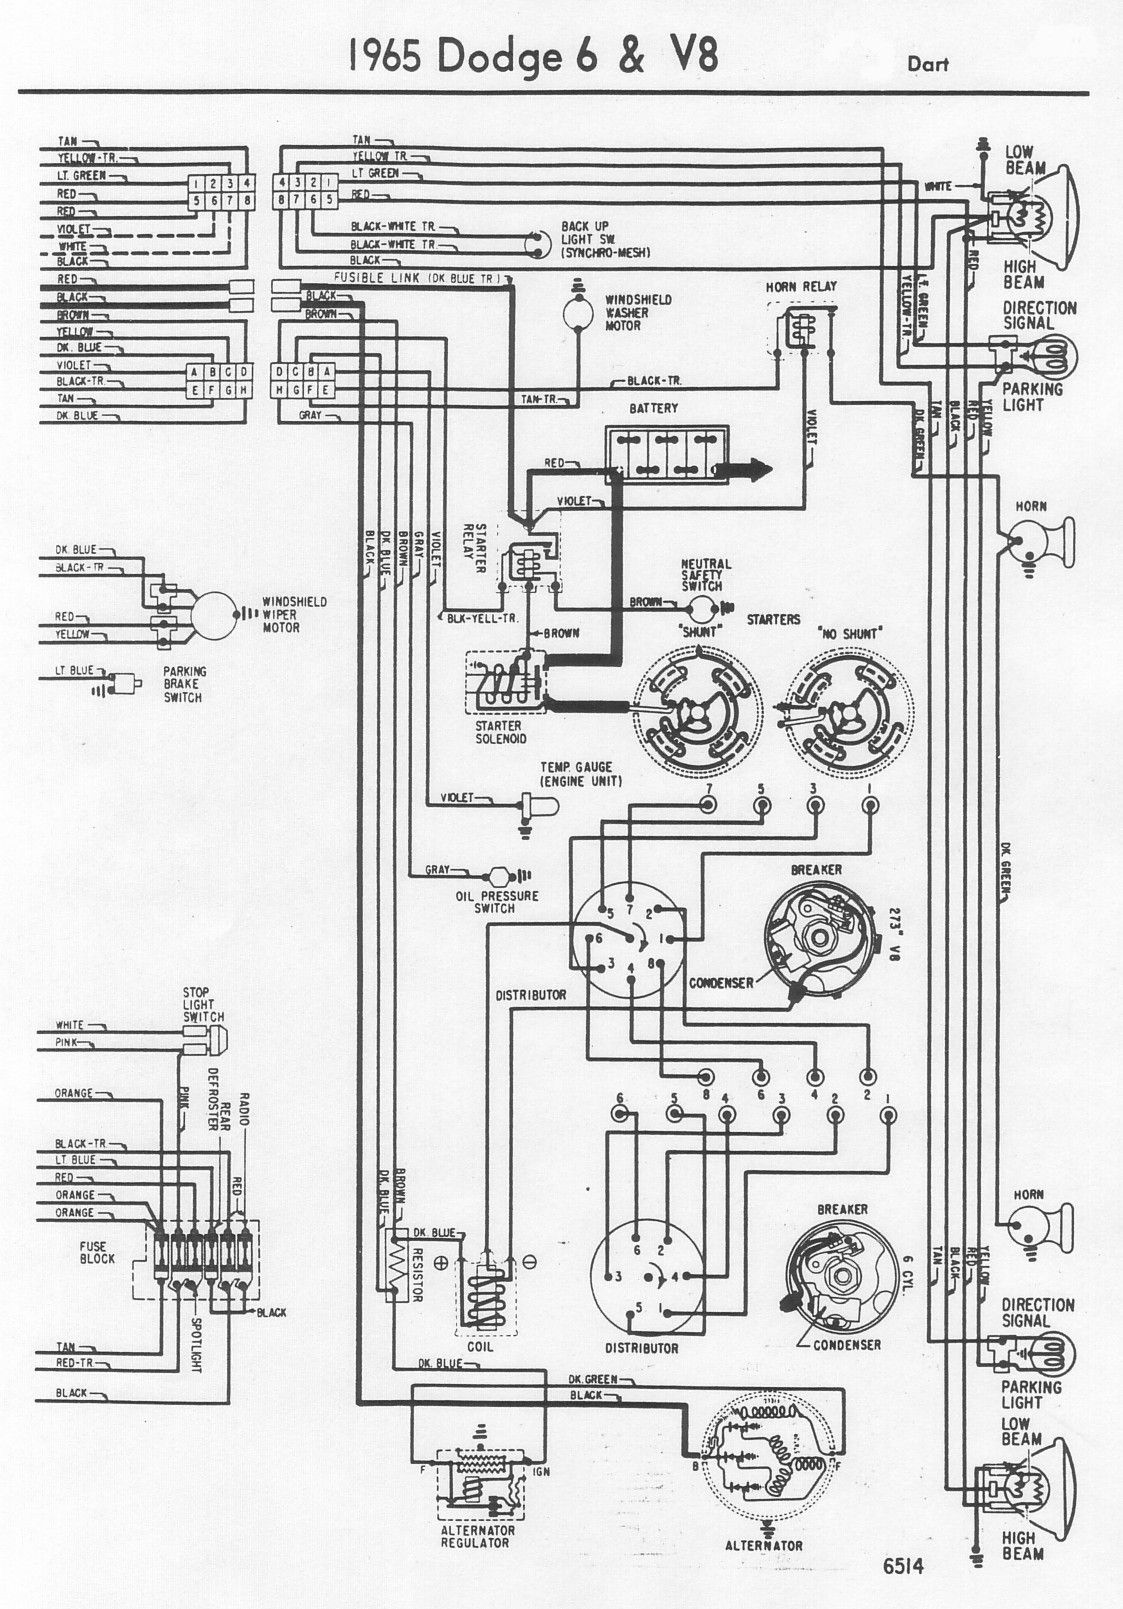 E B Dc D Be D E Bba B B on 65 Dodge Coronet Wiring Diagram